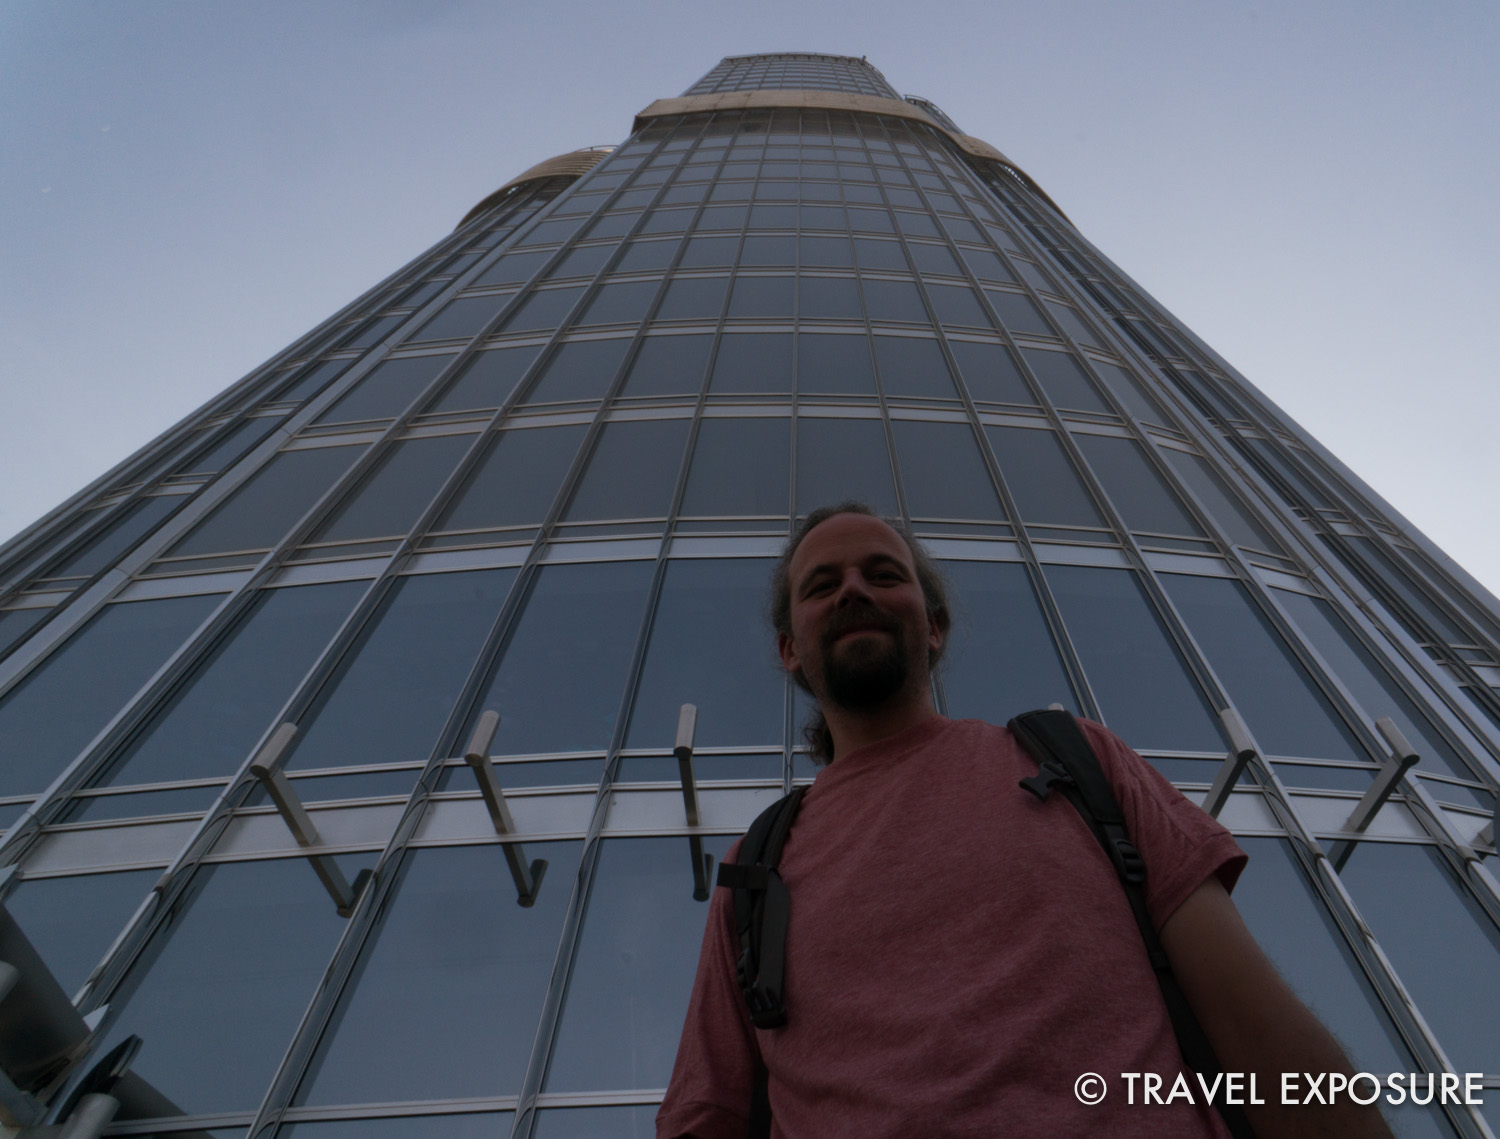 At the Burj Khalifa, the tallest building in the world, in Dubai.